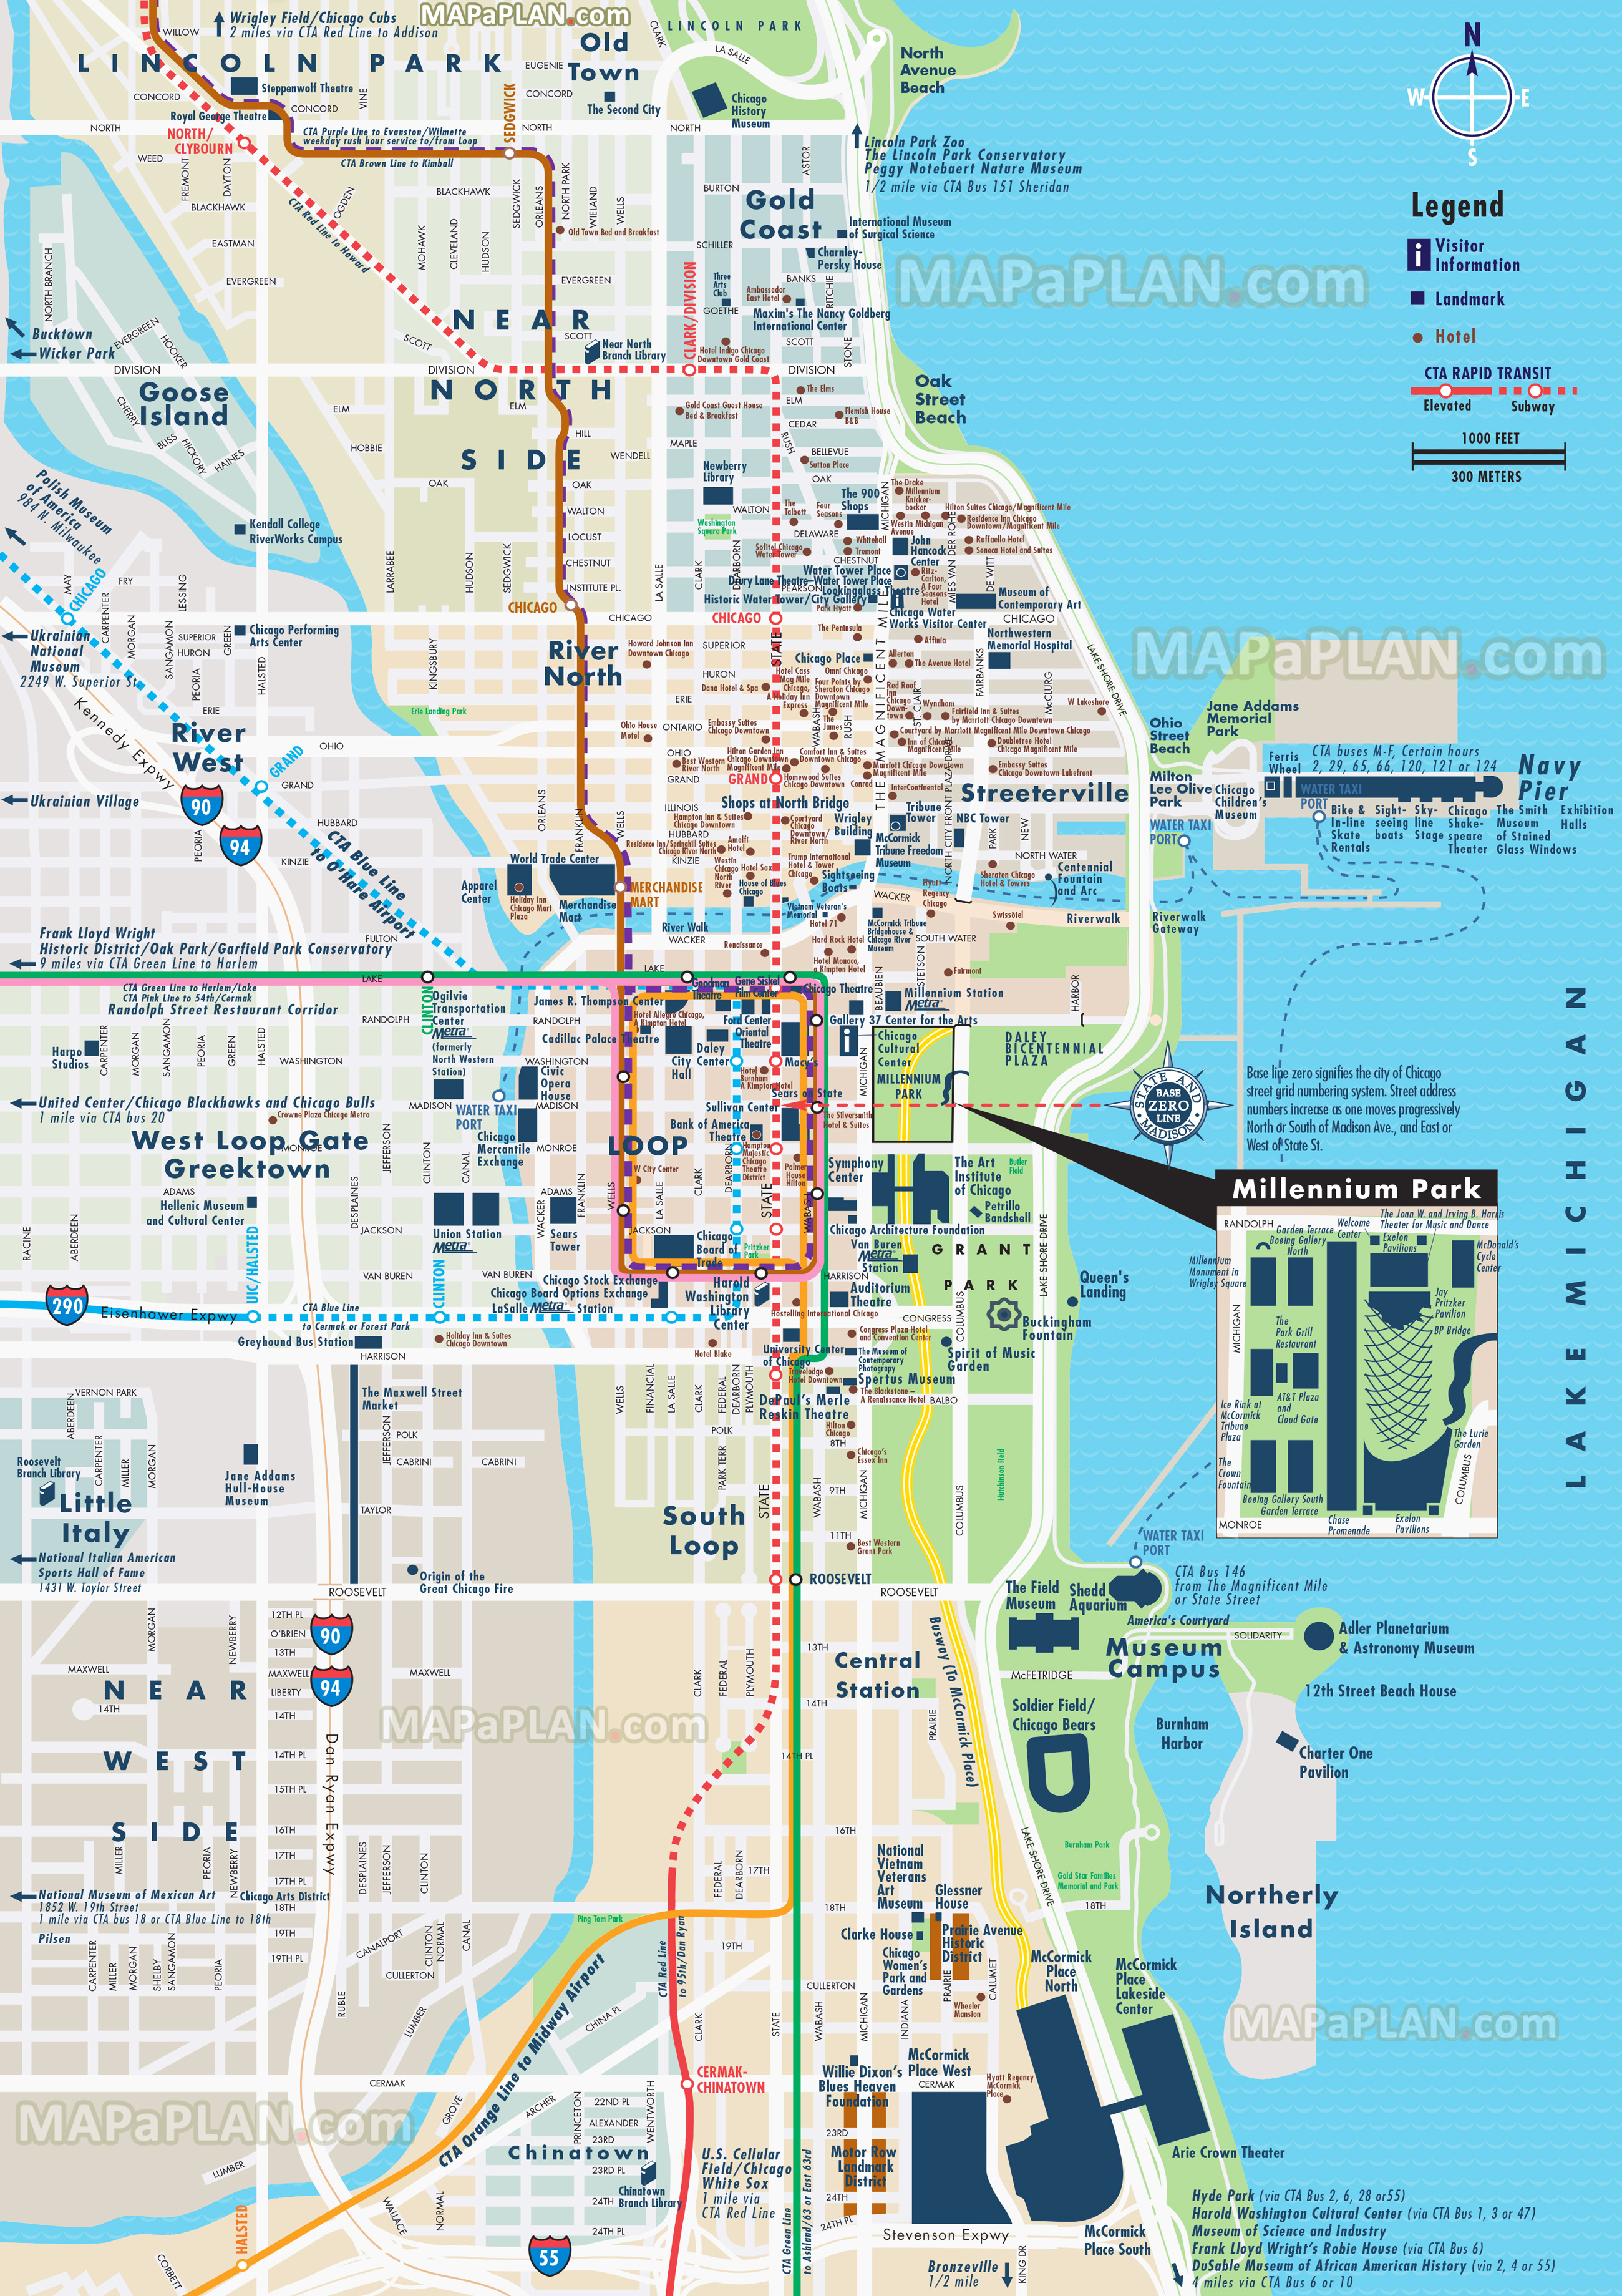 Chicago Map - Street & Road Names Plan With Central Most Popular - Map Of Chicago Attractions Printable